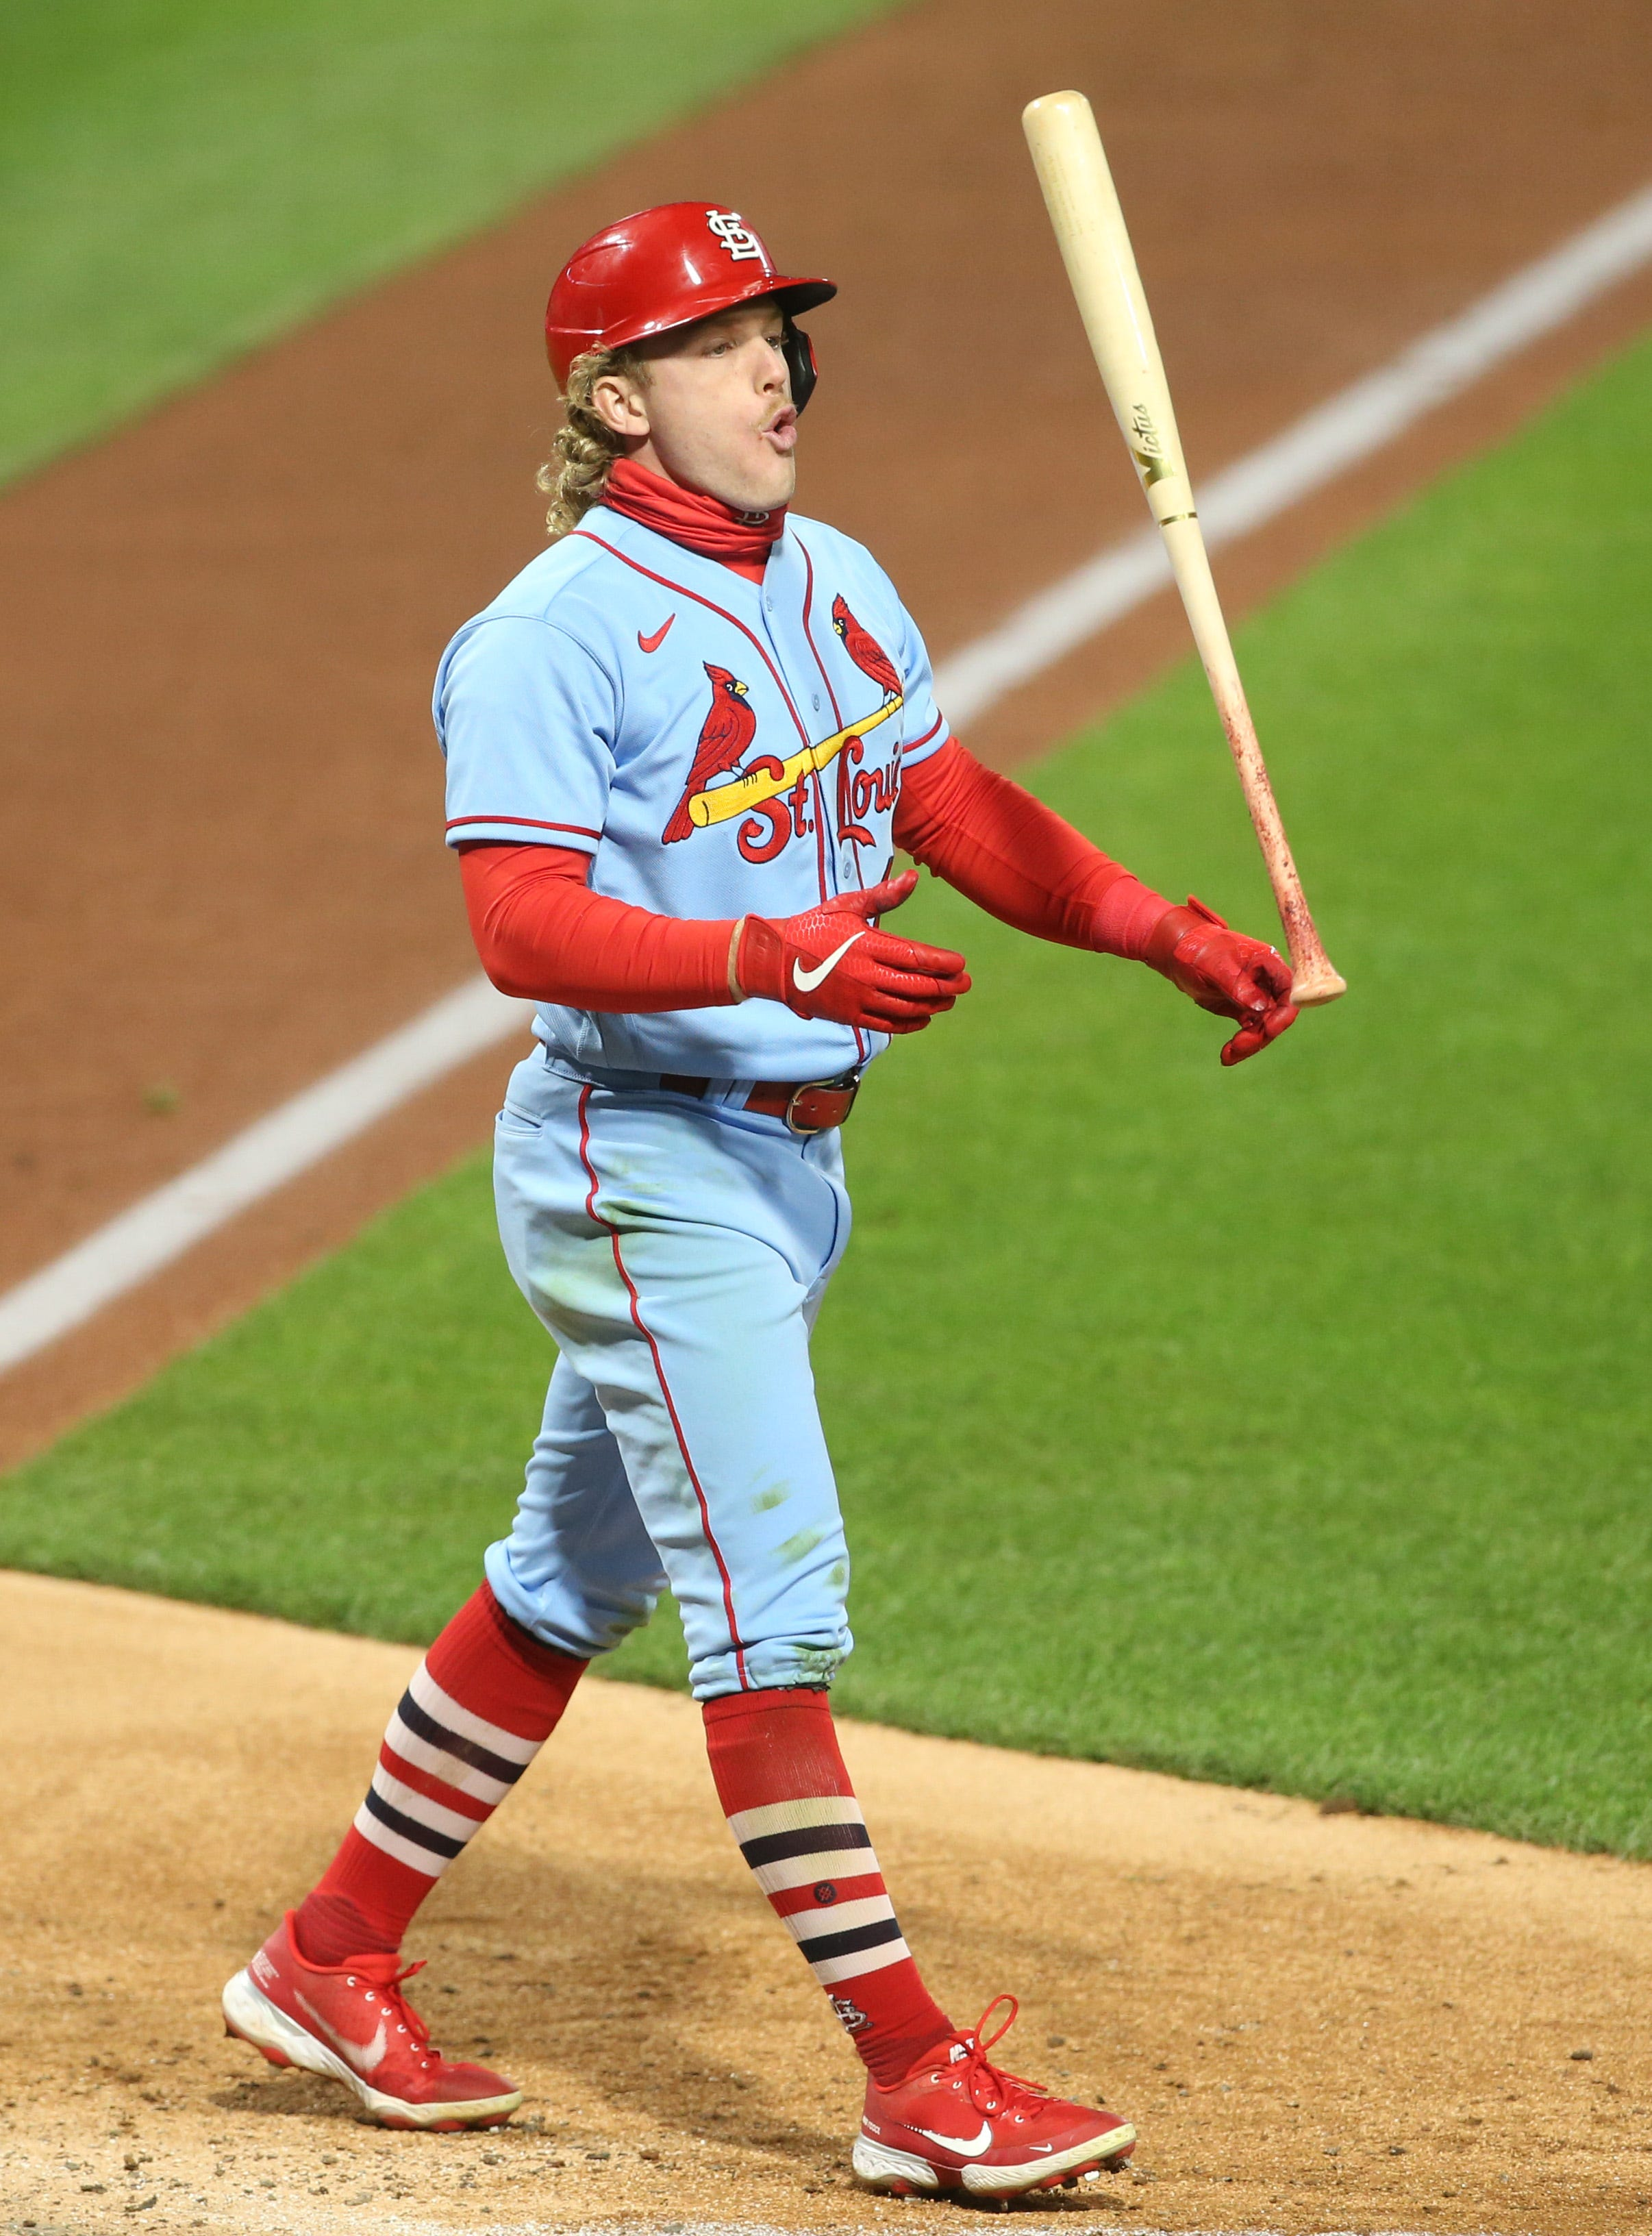 Cardinals' Harrison Bader strikes out five times, tying unfortunate postseason record